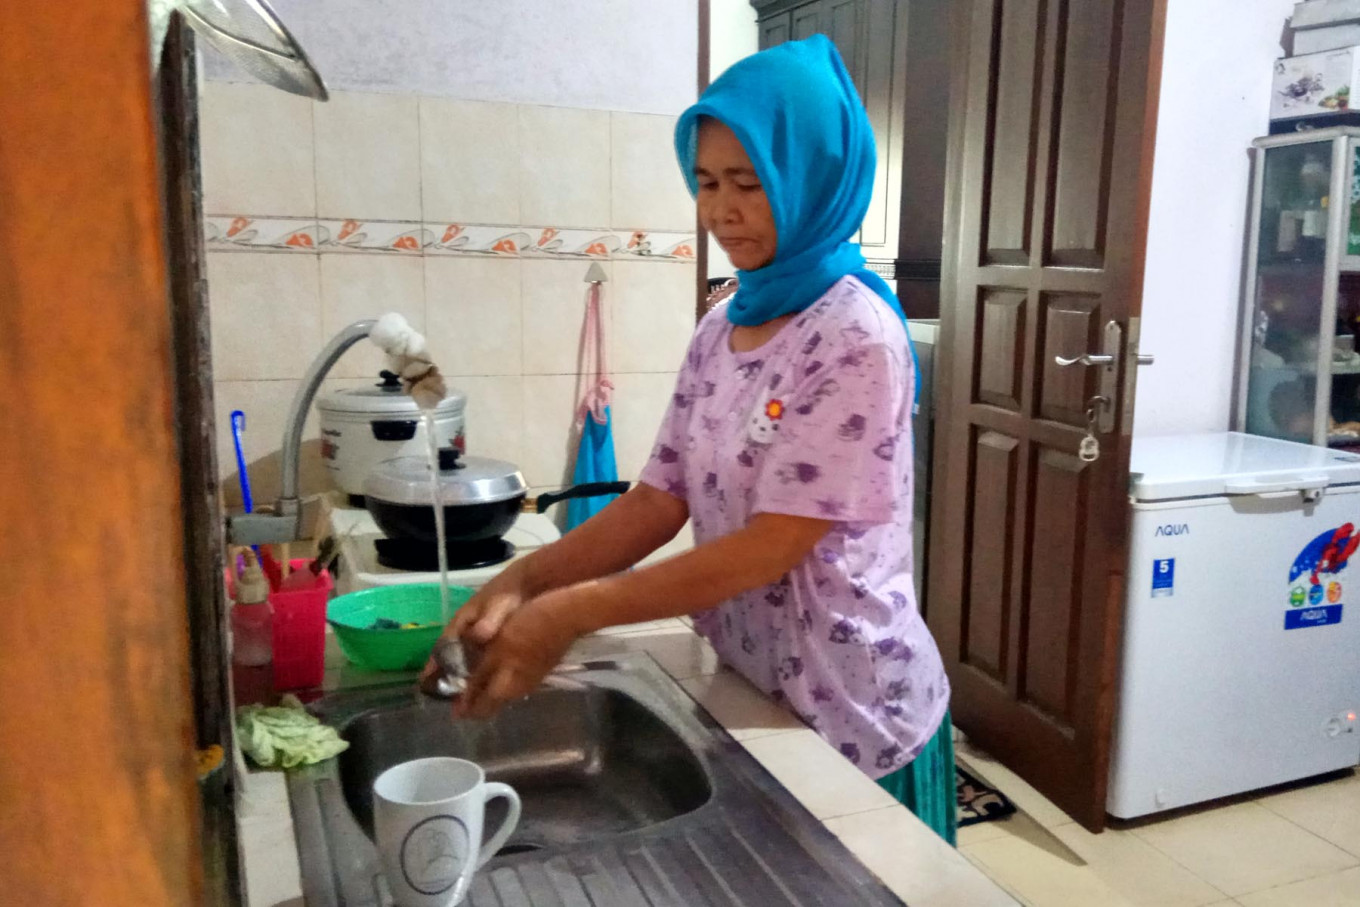 'What about us?': Domestic workers feel neglected amid virus outbreak